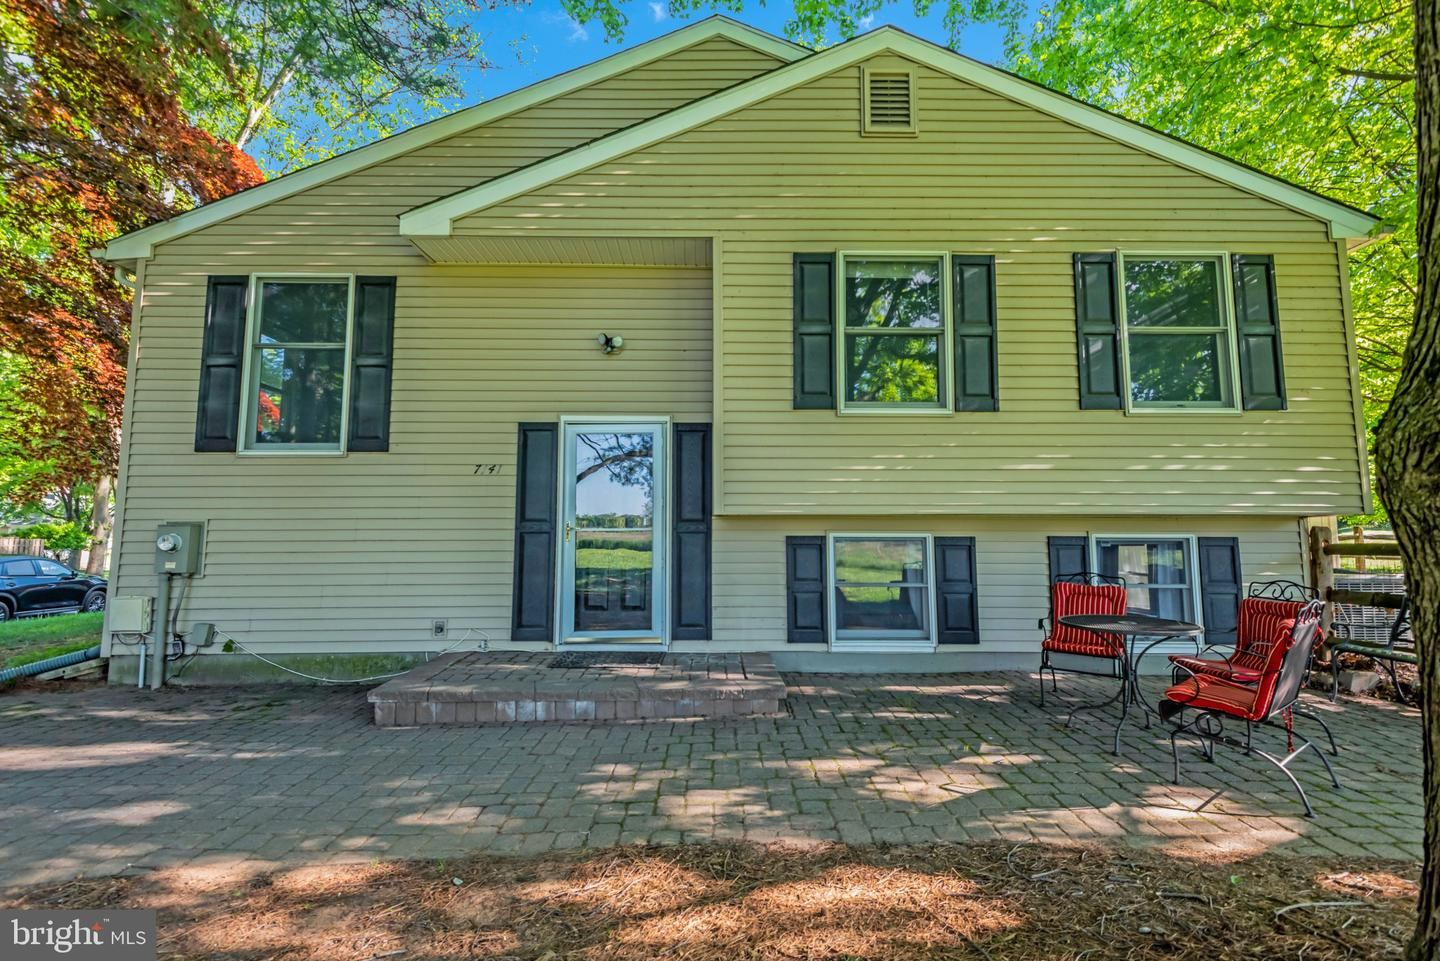 7141 STAG HORN PATH, Columbia, MD 21045 - MLS#: MDHW294128